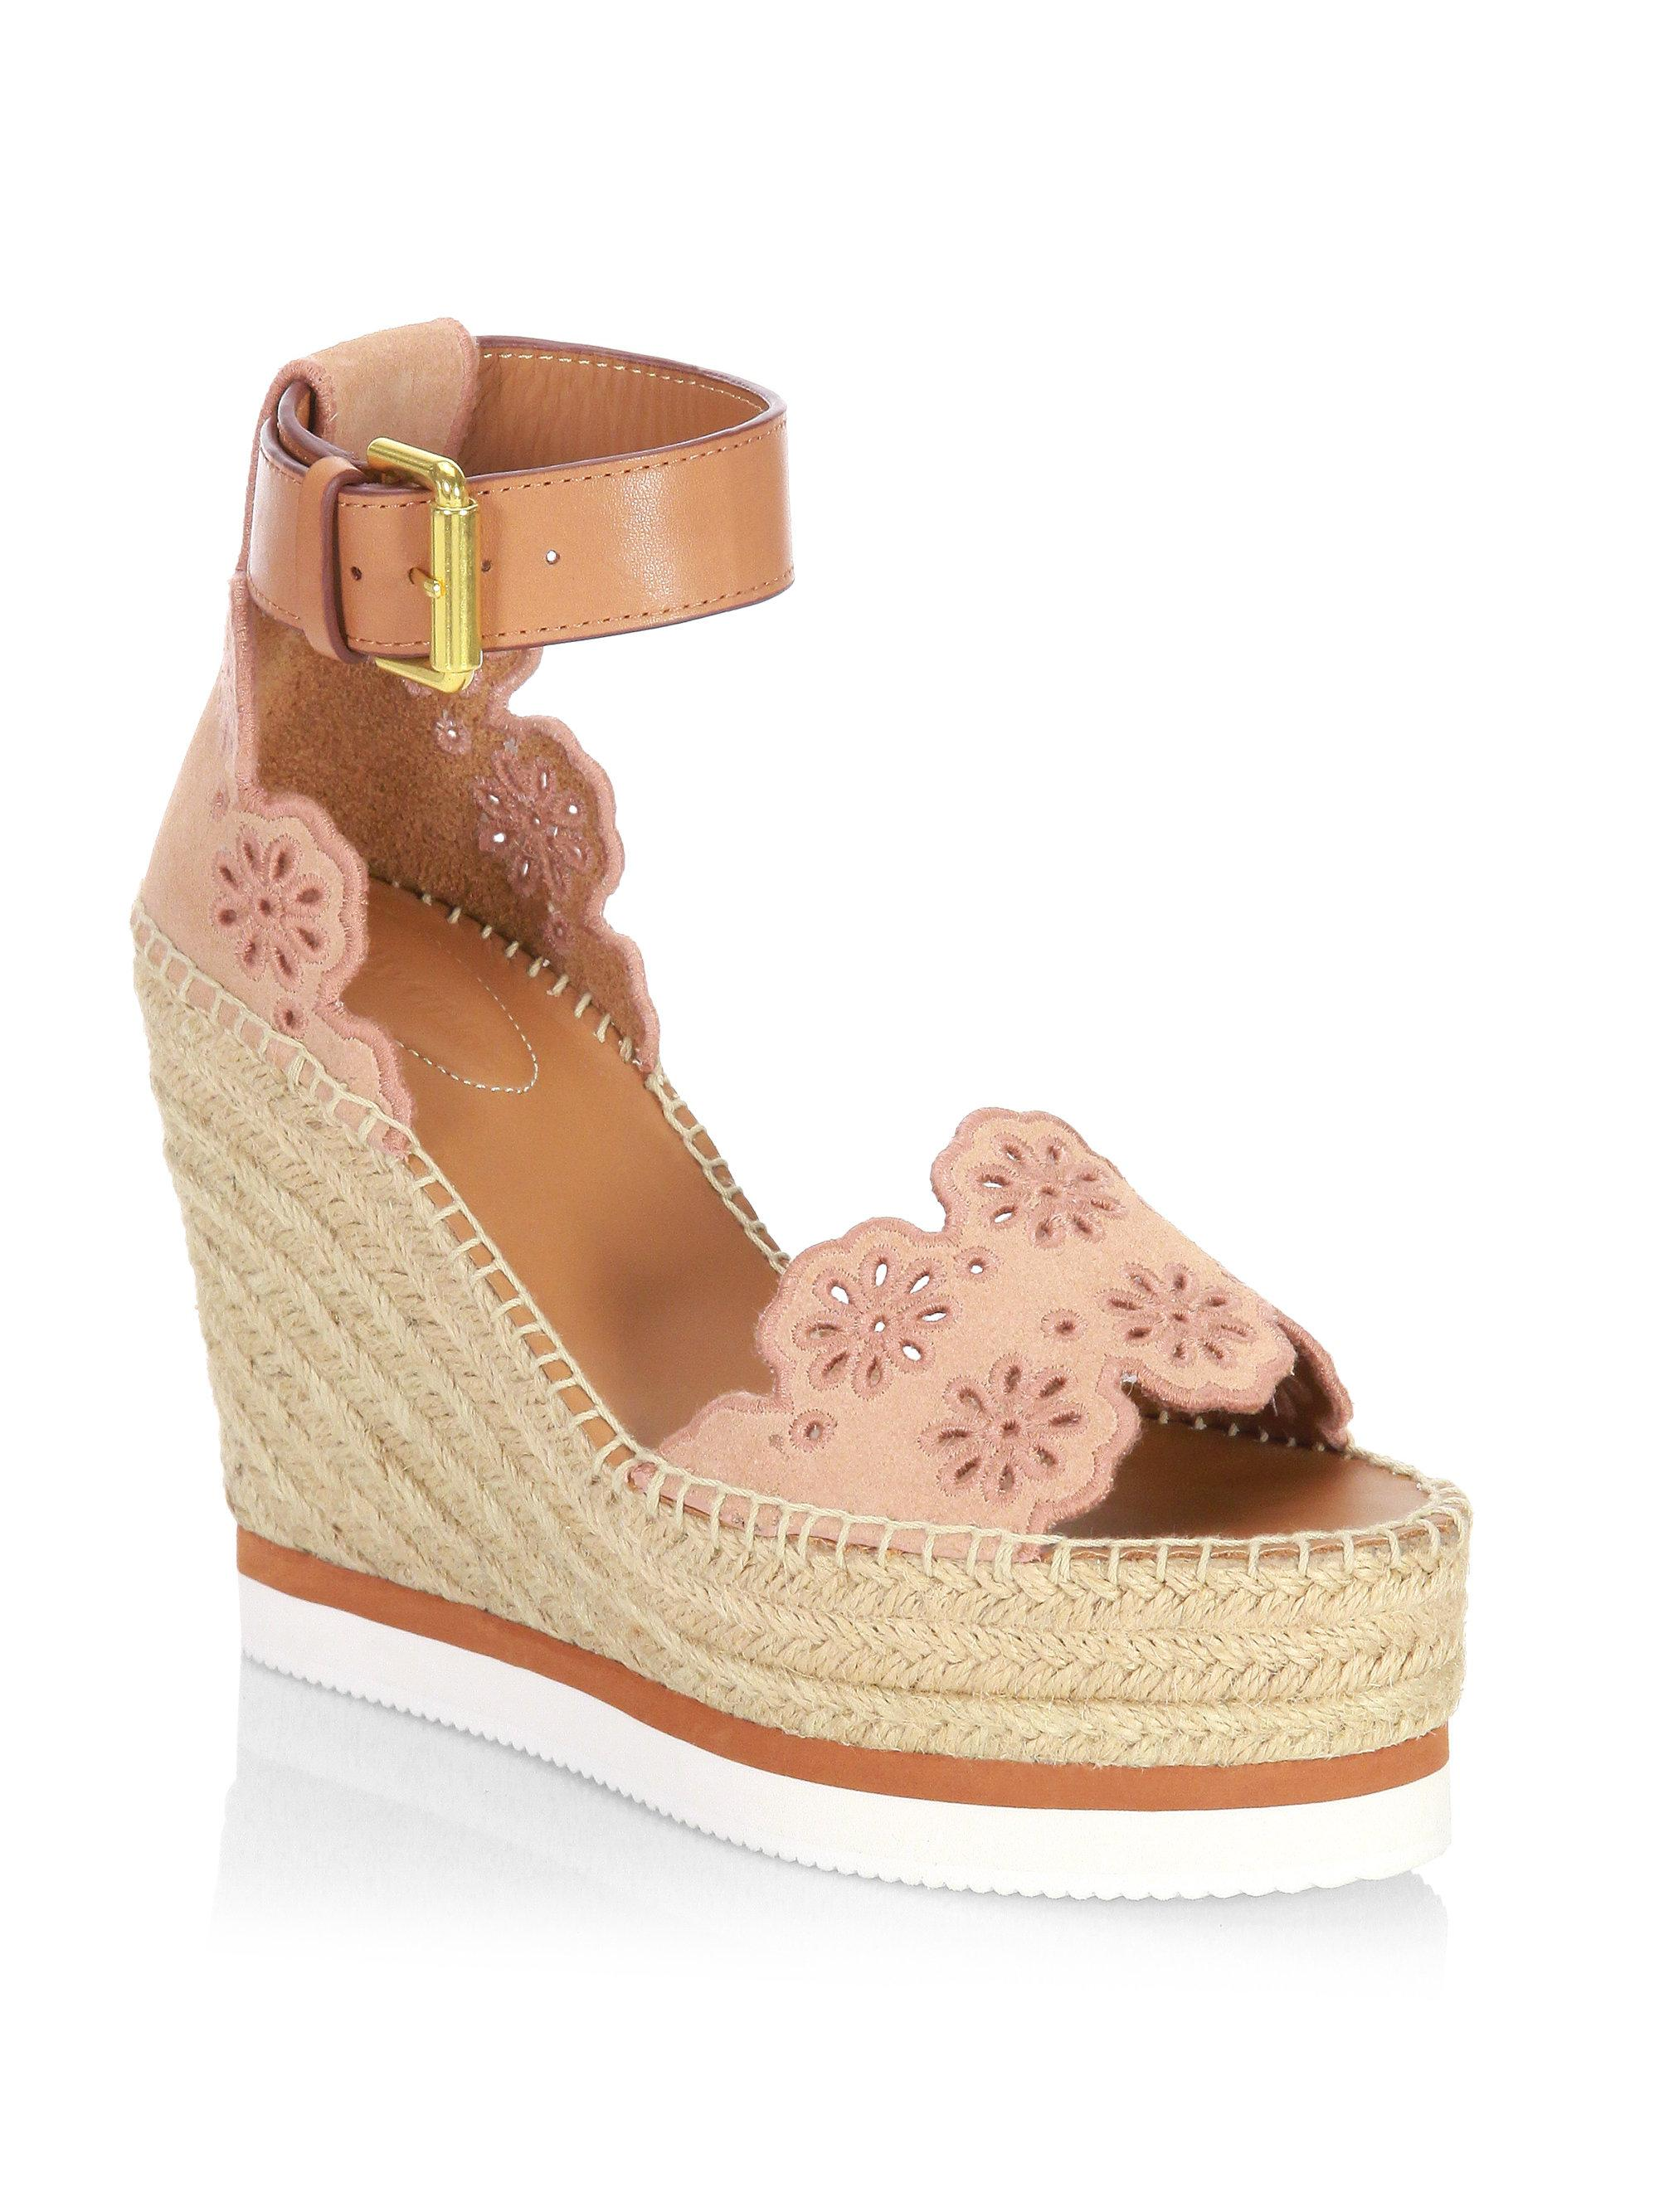 cac6042a83d See By Chloé Natural Laser Cut Suede Wedge Espadrilles